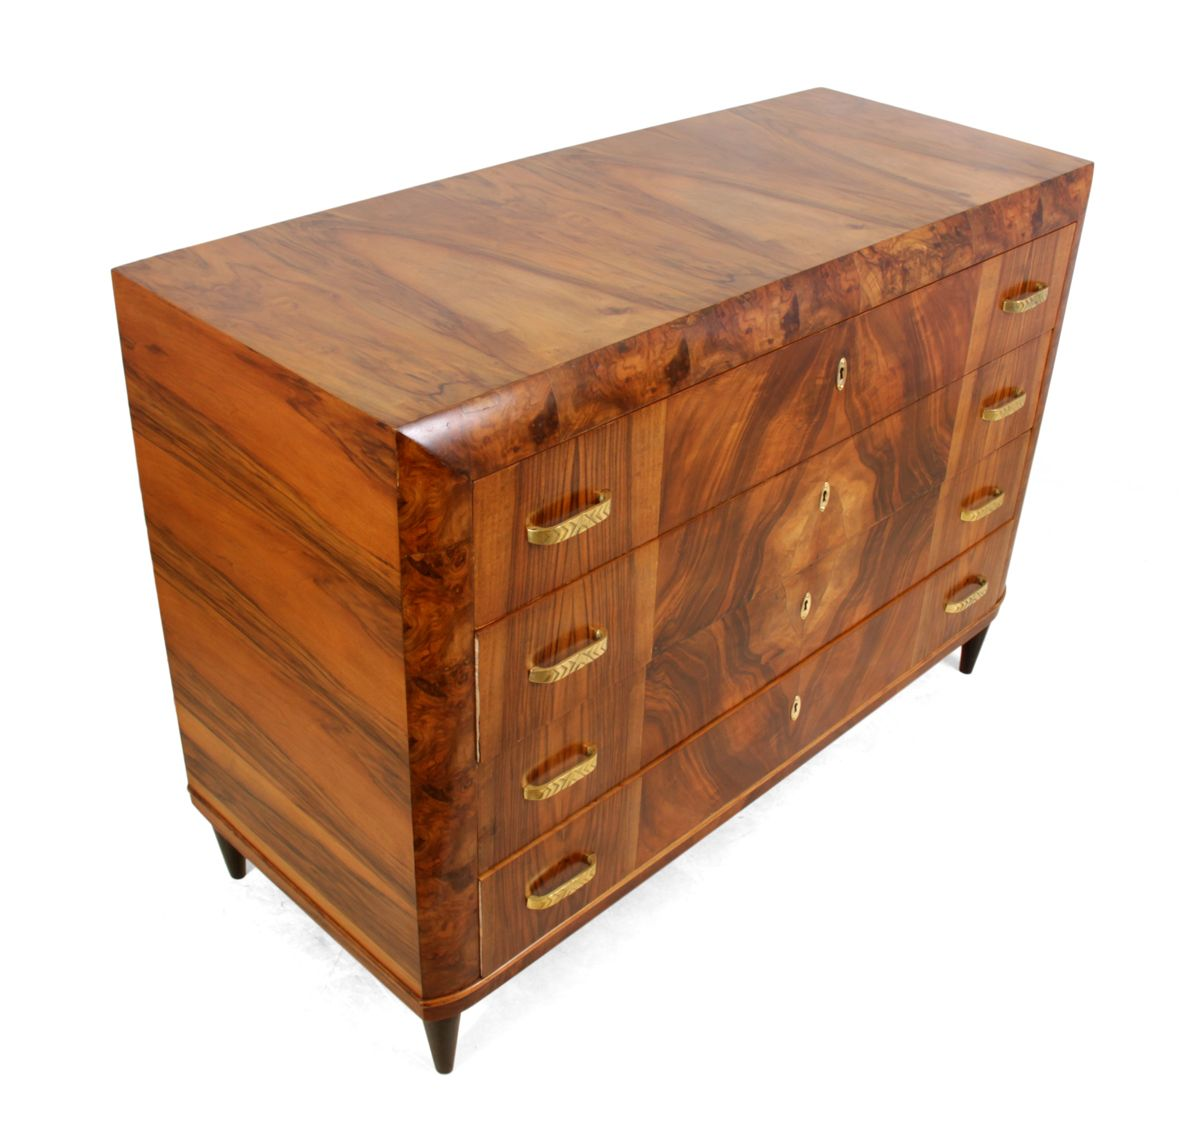 Vintage italian art deco walnut commode for sale at pamono for Commode miroir art deco